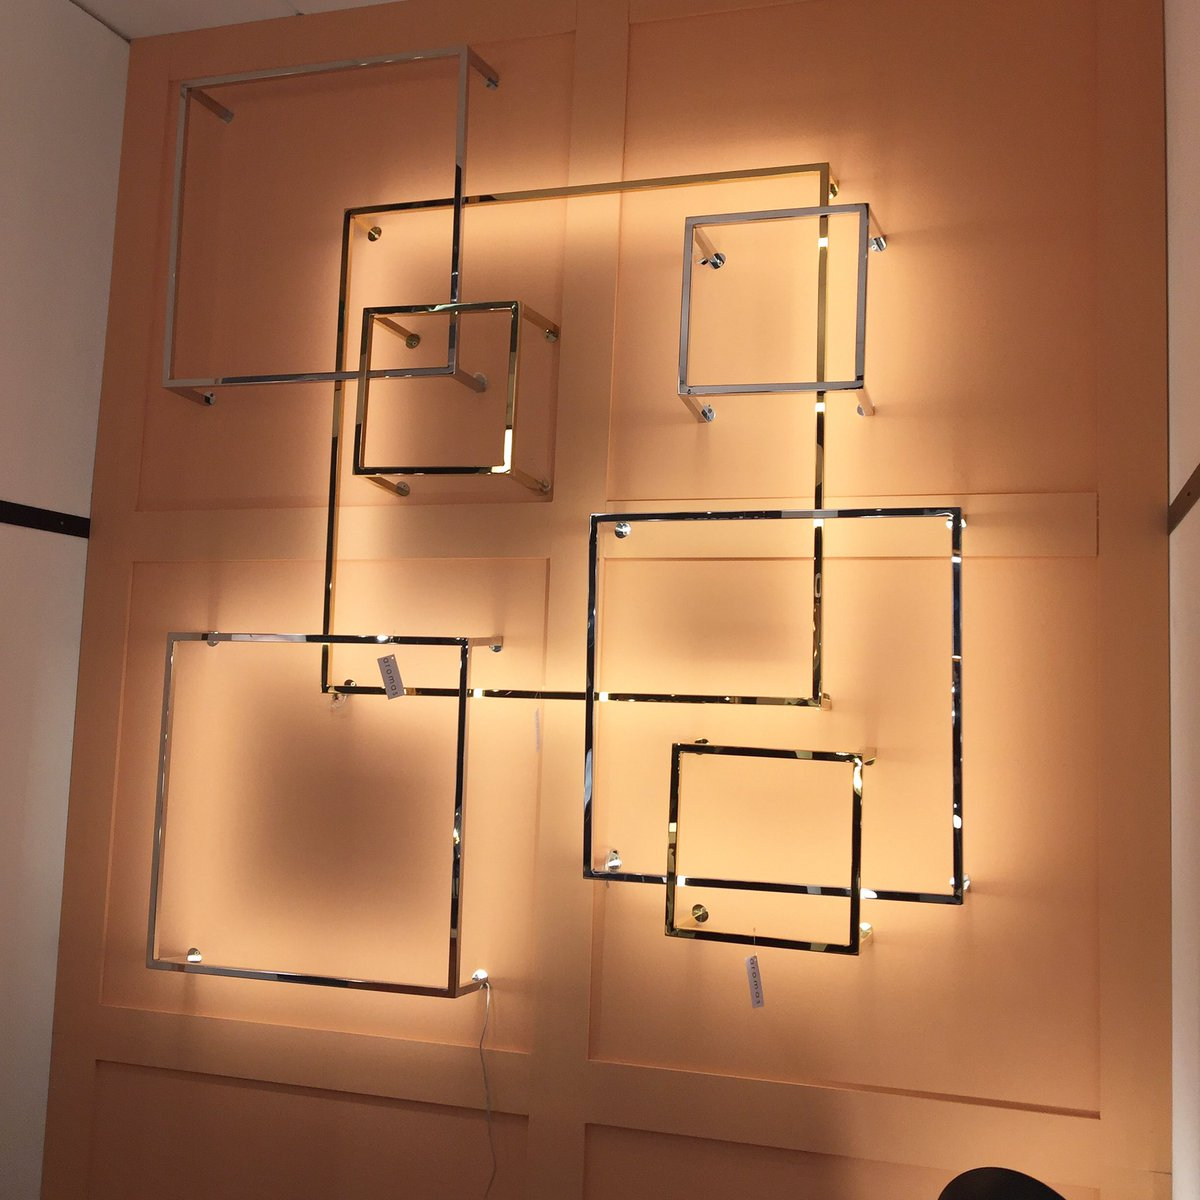 aromas del campo on twitter maisonetobjet 2017 paris new models cubex wall lamp. Black Bedroom Furniture Sets. Home Design Ideas